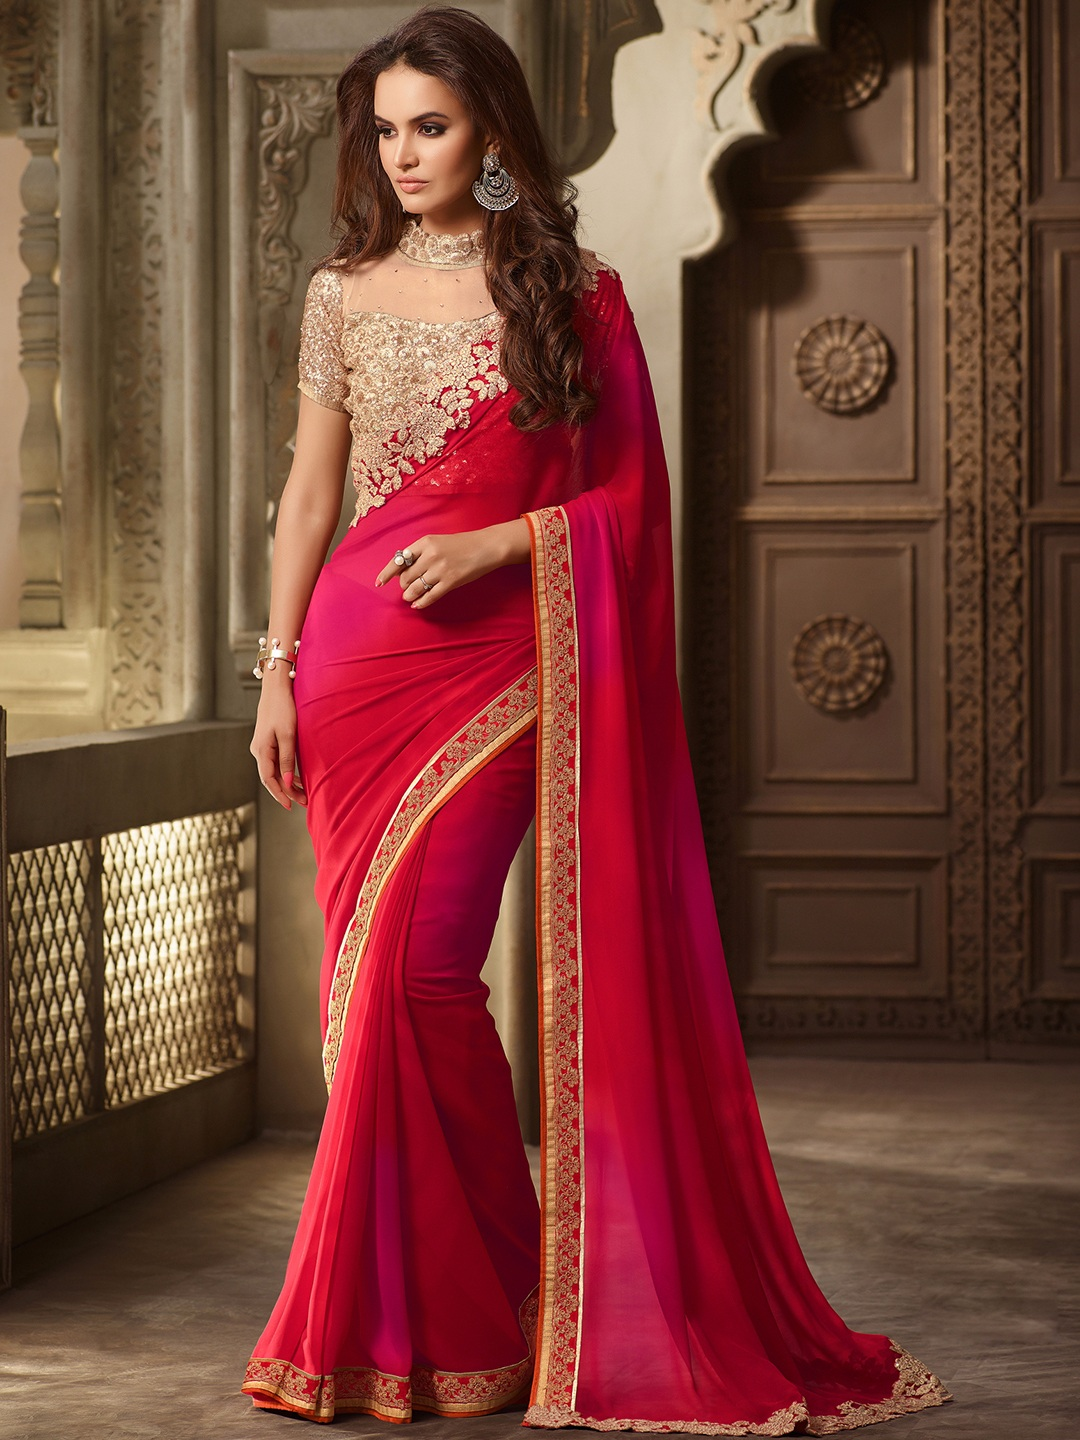 2c79e4ba50 Top 15 Red color sarees you Must Have — G3+ Fashion